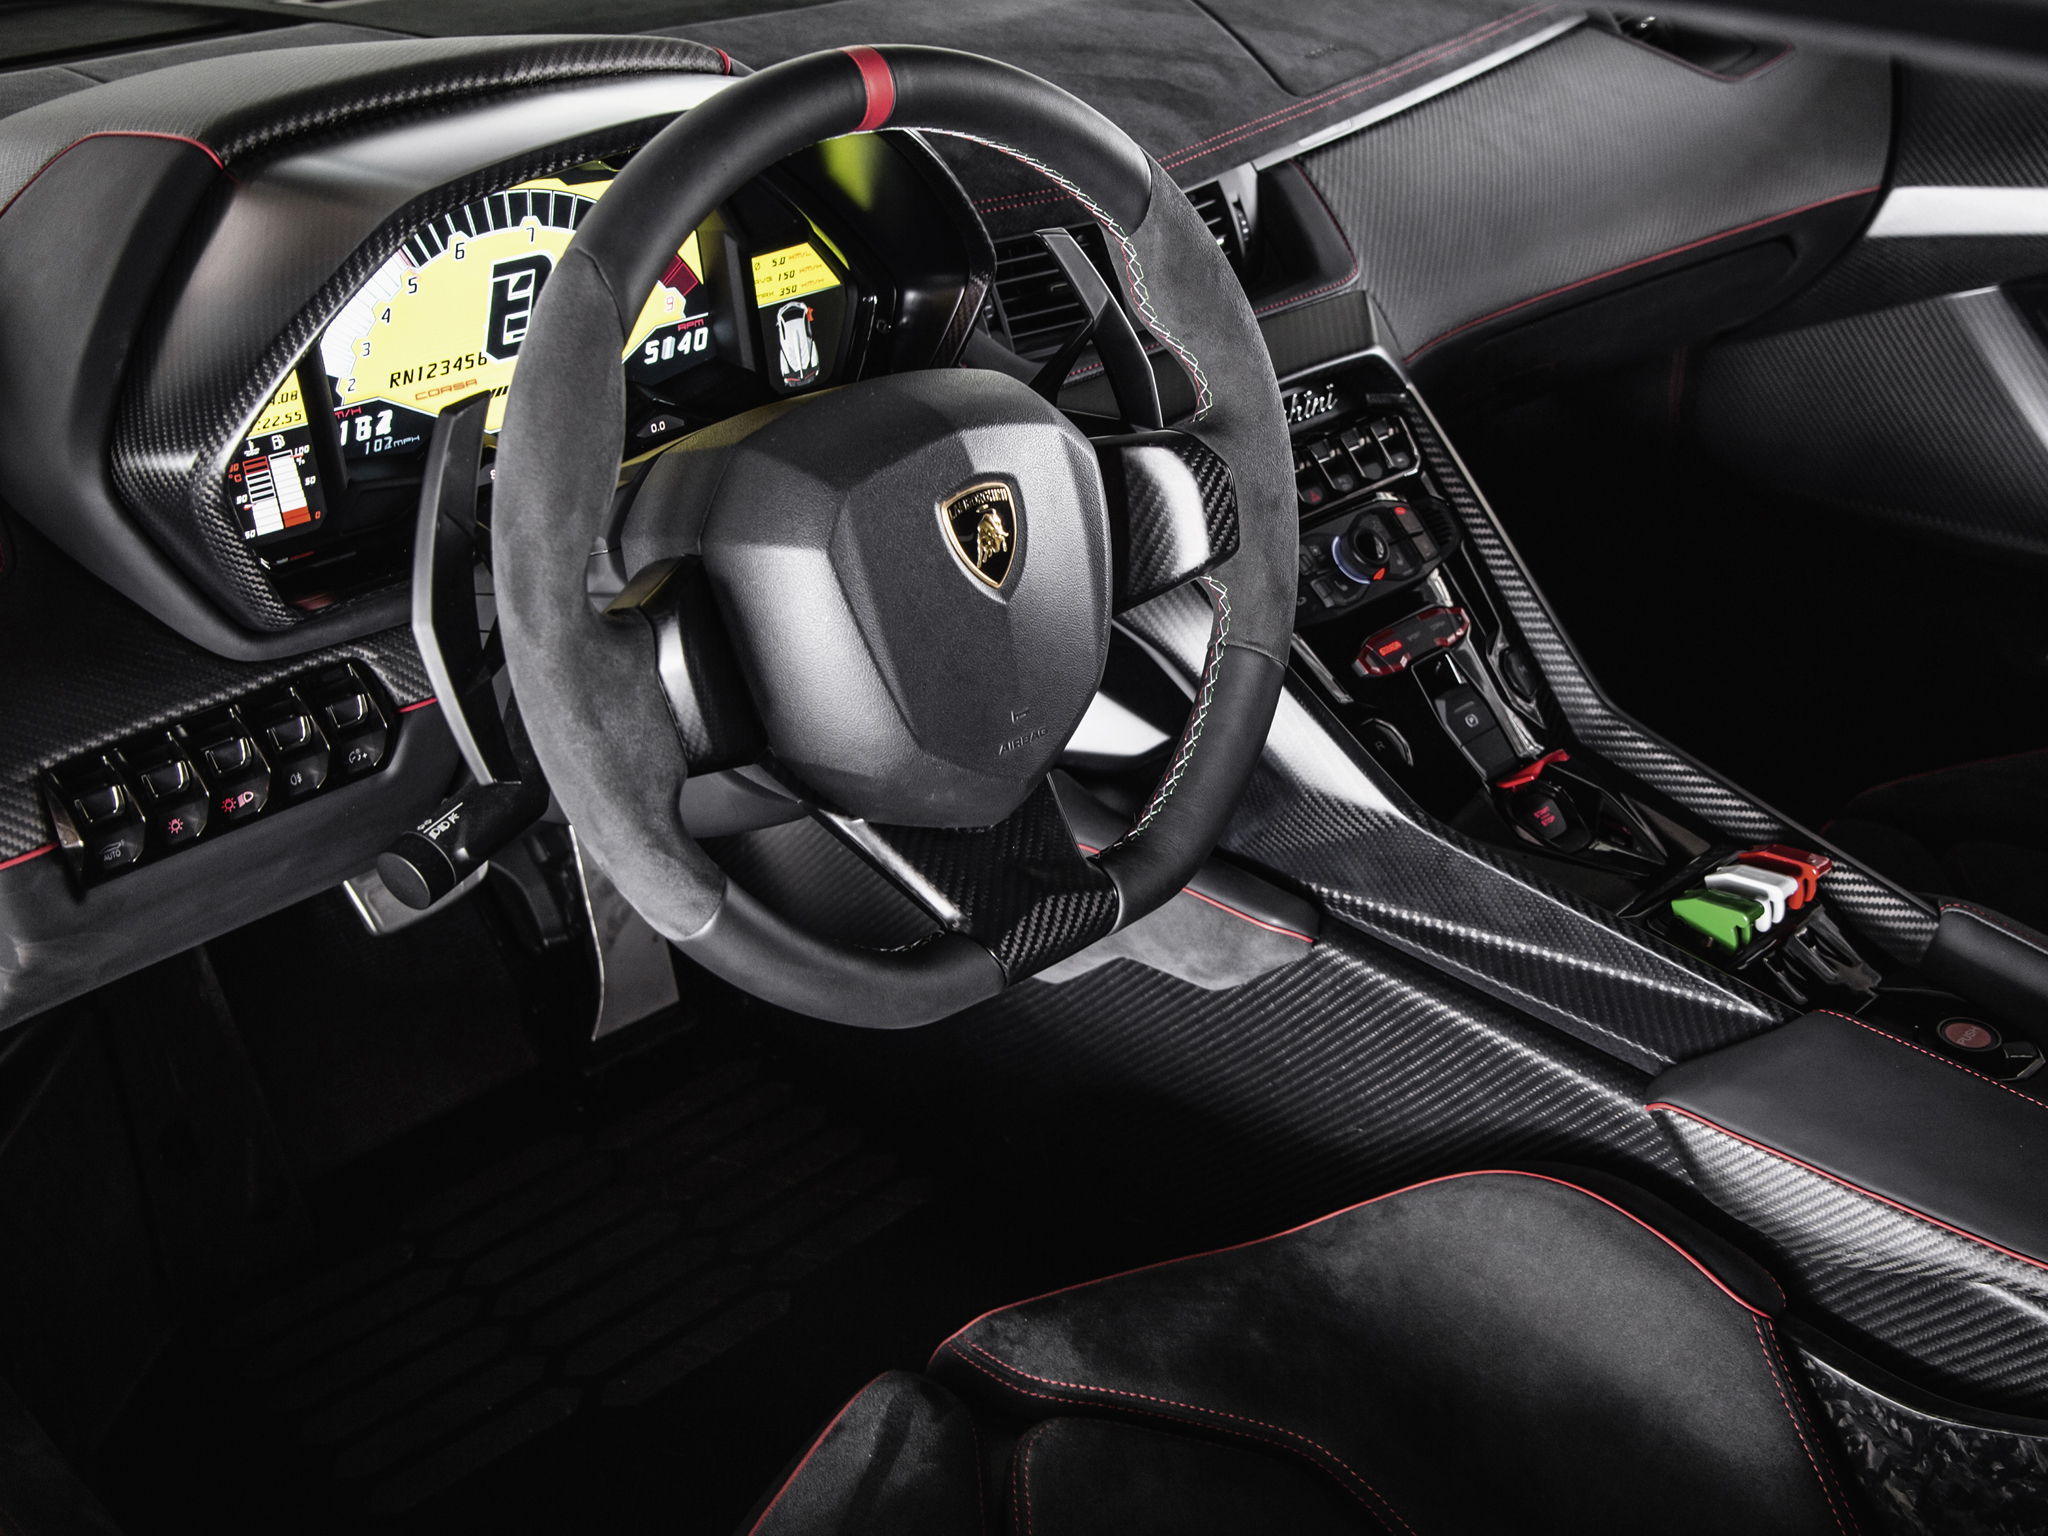 2013 lamborghini veneno supercar interior d wallpaper 2048x1536 153627 wallpaperup. Black Bedroom Furniture Sets. Home Design Ideas